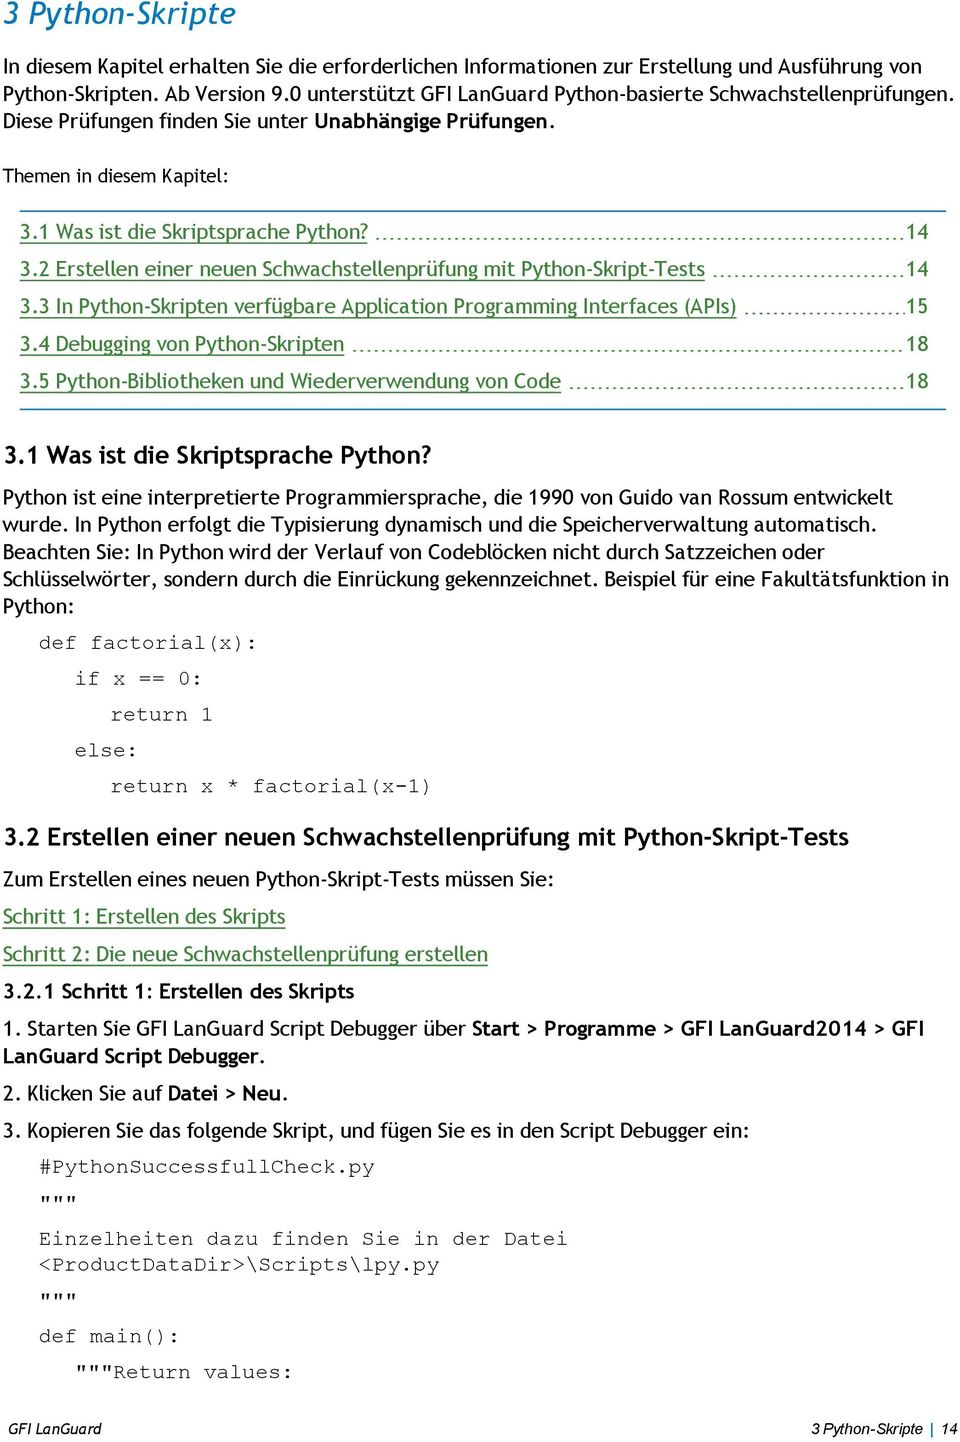 2 Erstellen einer neuen Schwachstellenprüfung mit Python-Skript-Tests 14 3.3 In Python-Skripten verfügbare Application Programming Interfaces (APIs) 15 3.4 Debugging von Python-Skripten 18 3.